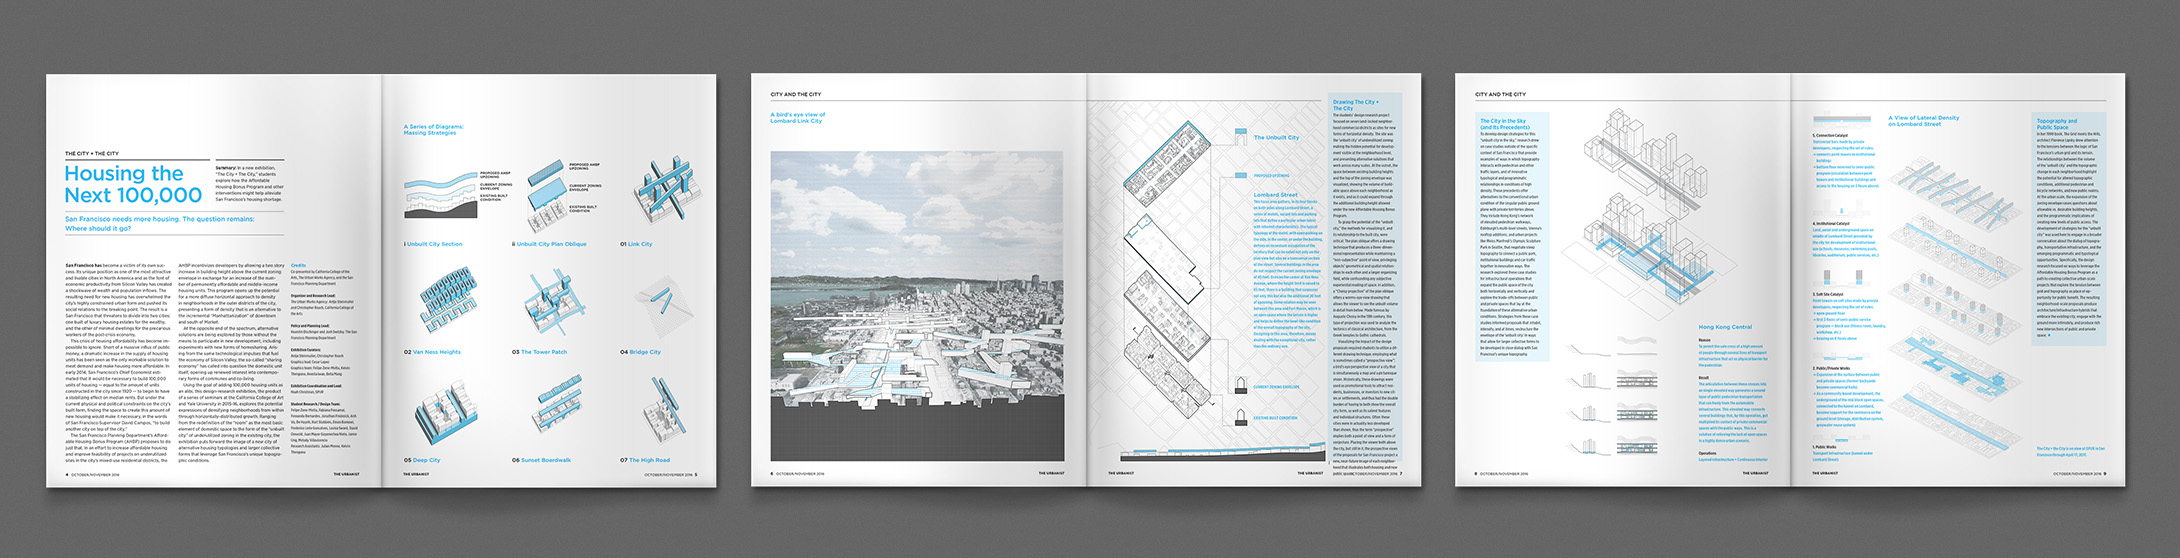 Urbanist-october-2016-feature-hazen